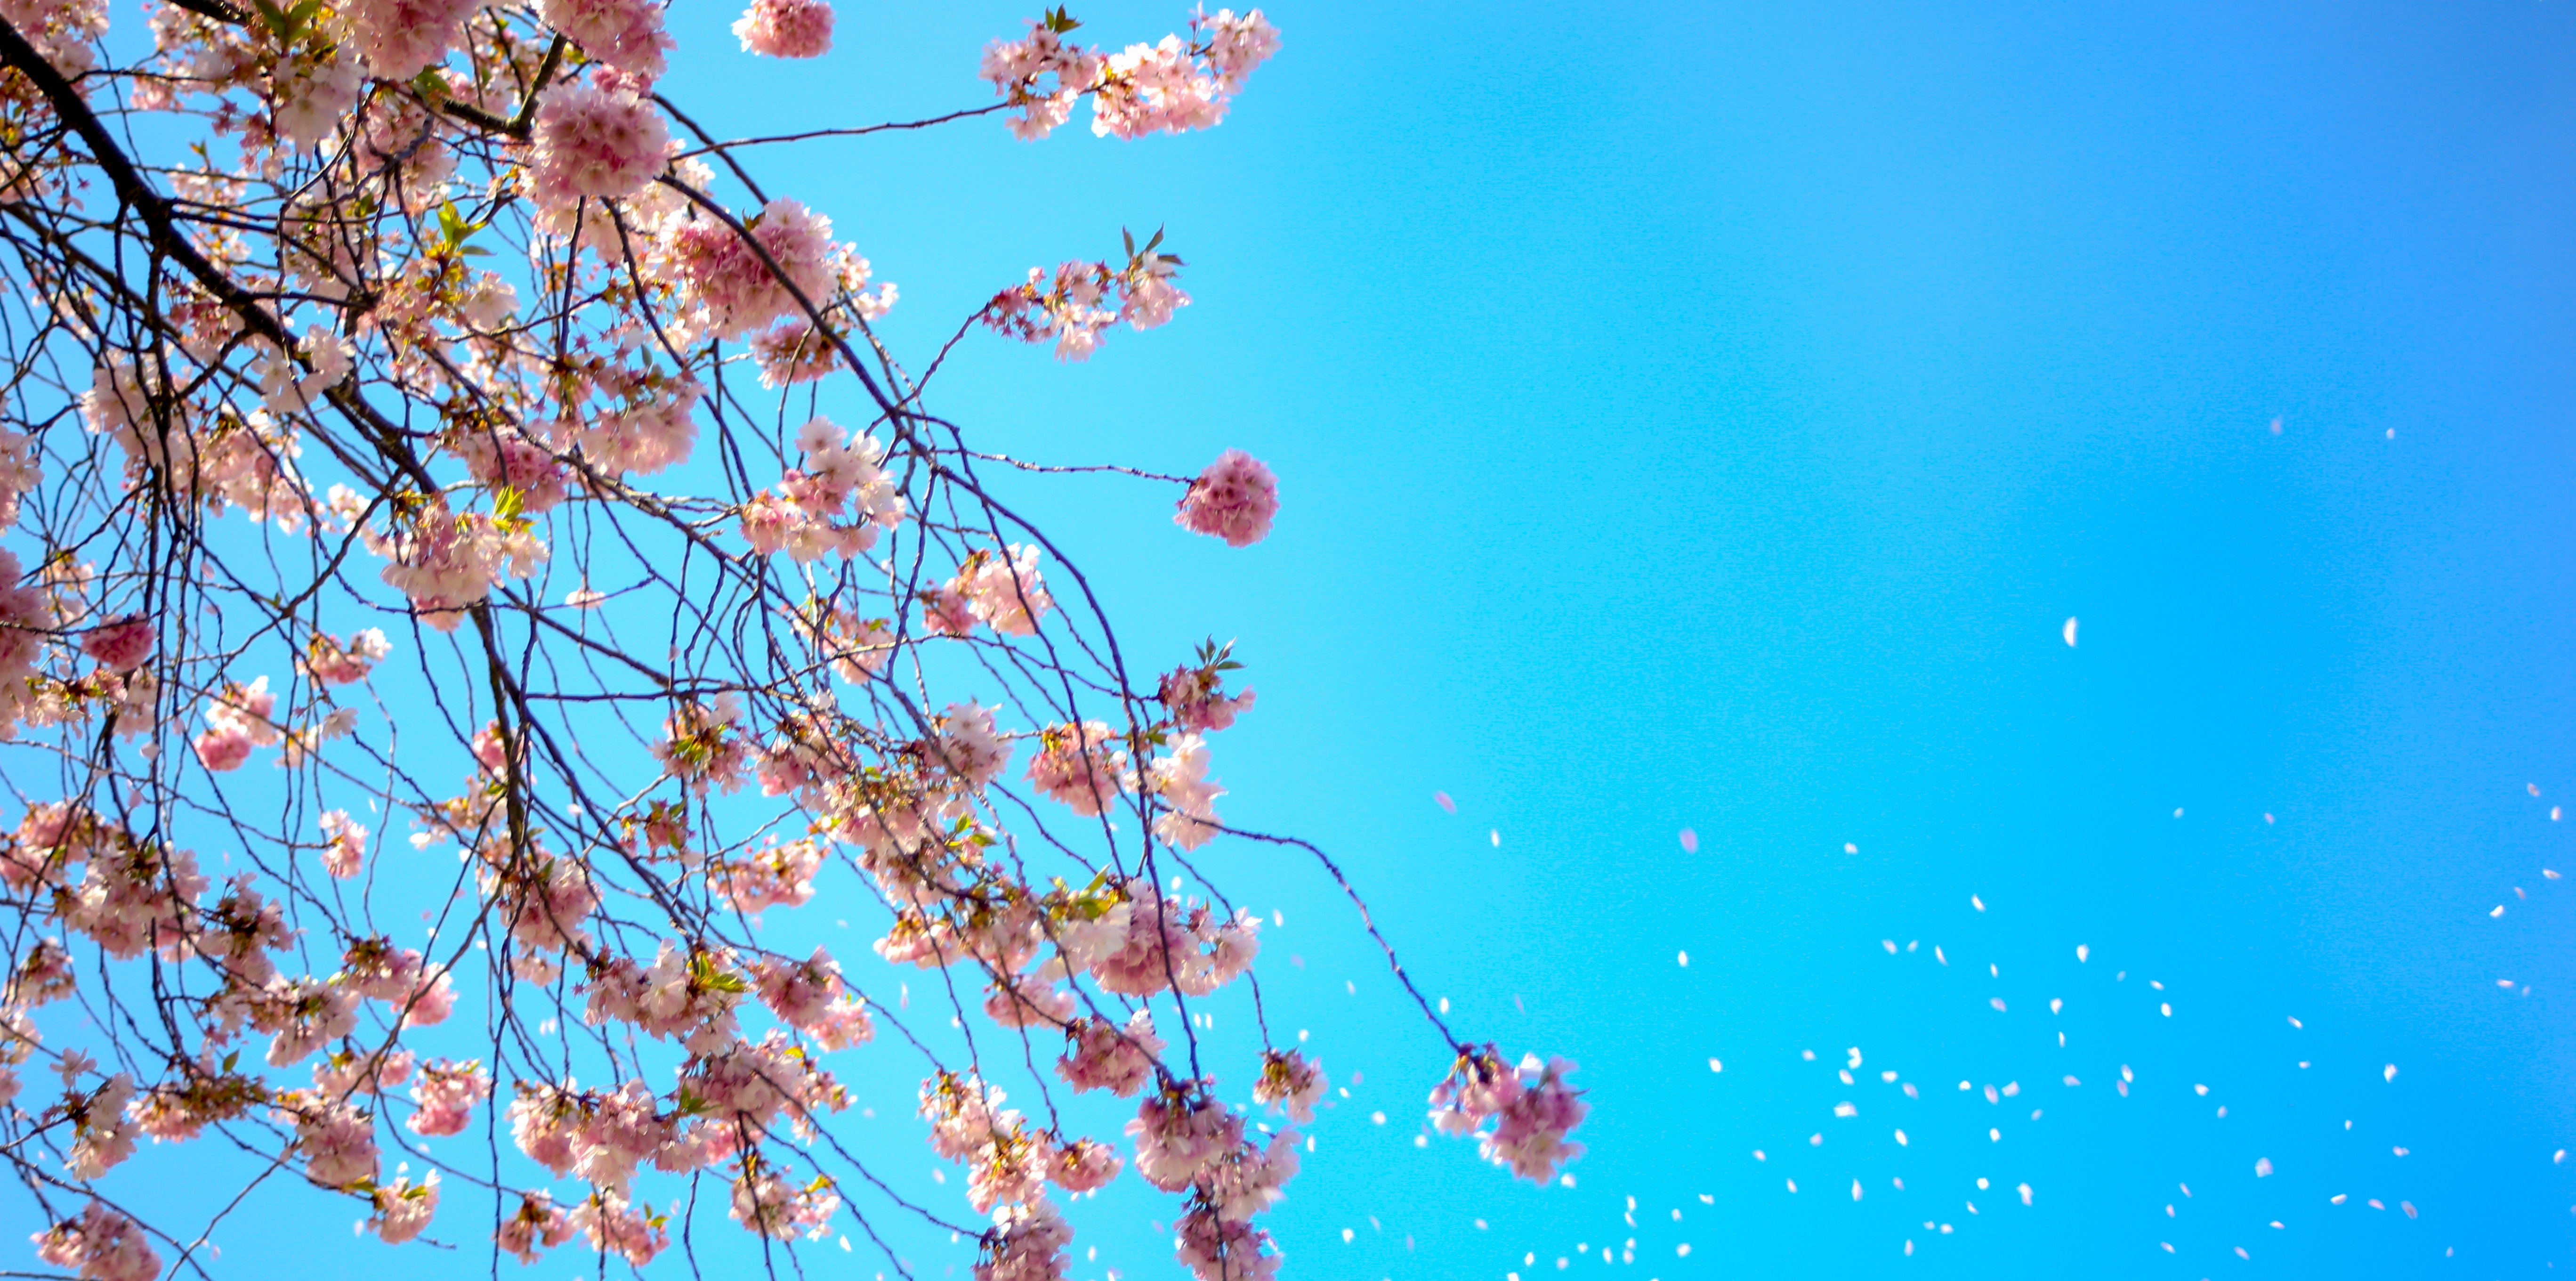 411 Colorful Spring Images Pexels Free Stock Photos